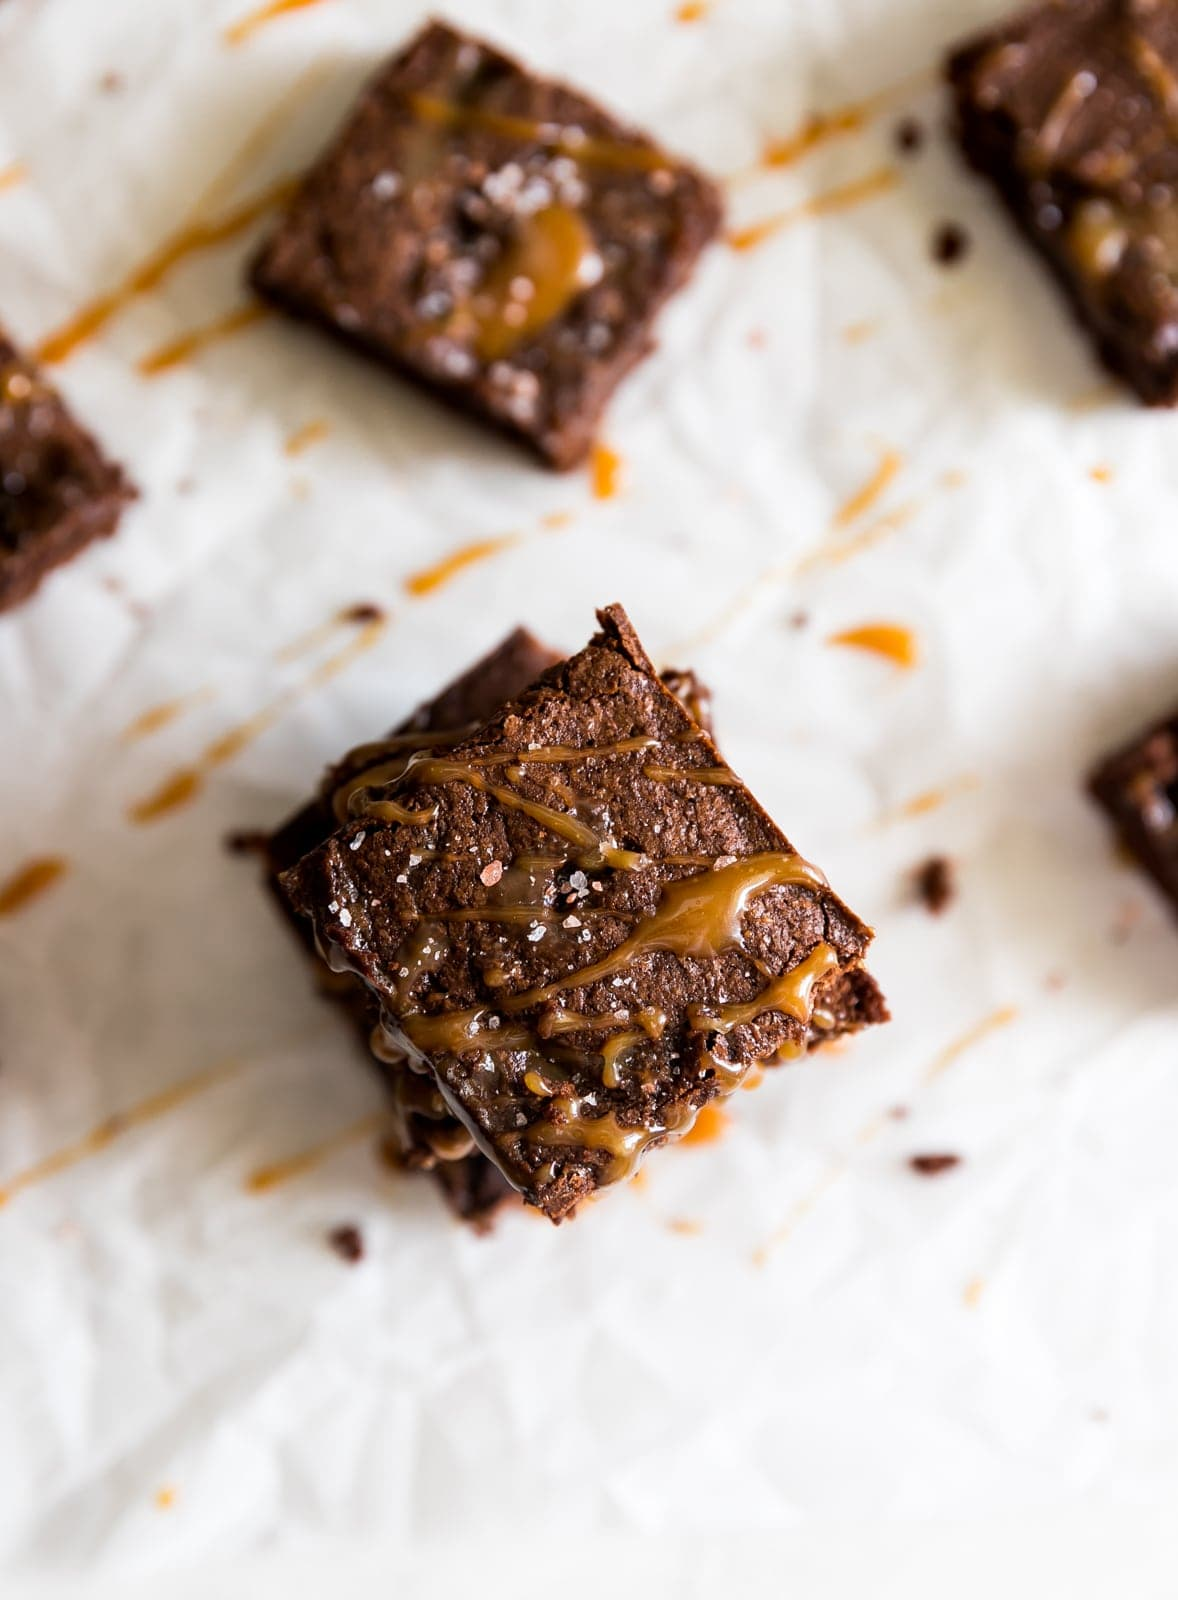 Chocolate brownies with caramel drizzled on top